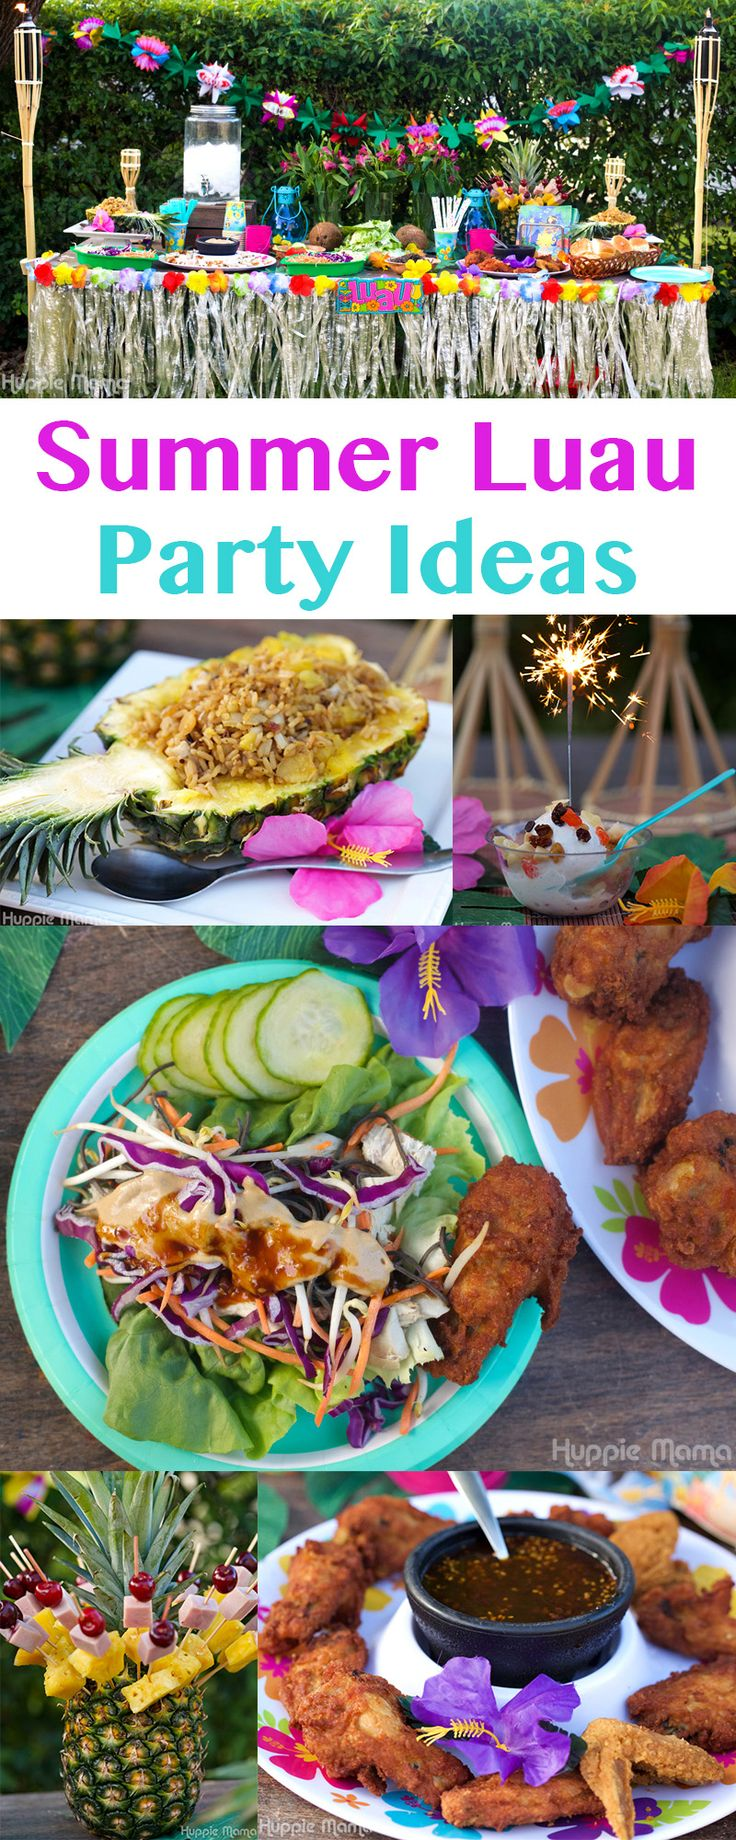 #AD Summer Luau Party Ideas #SummerYum